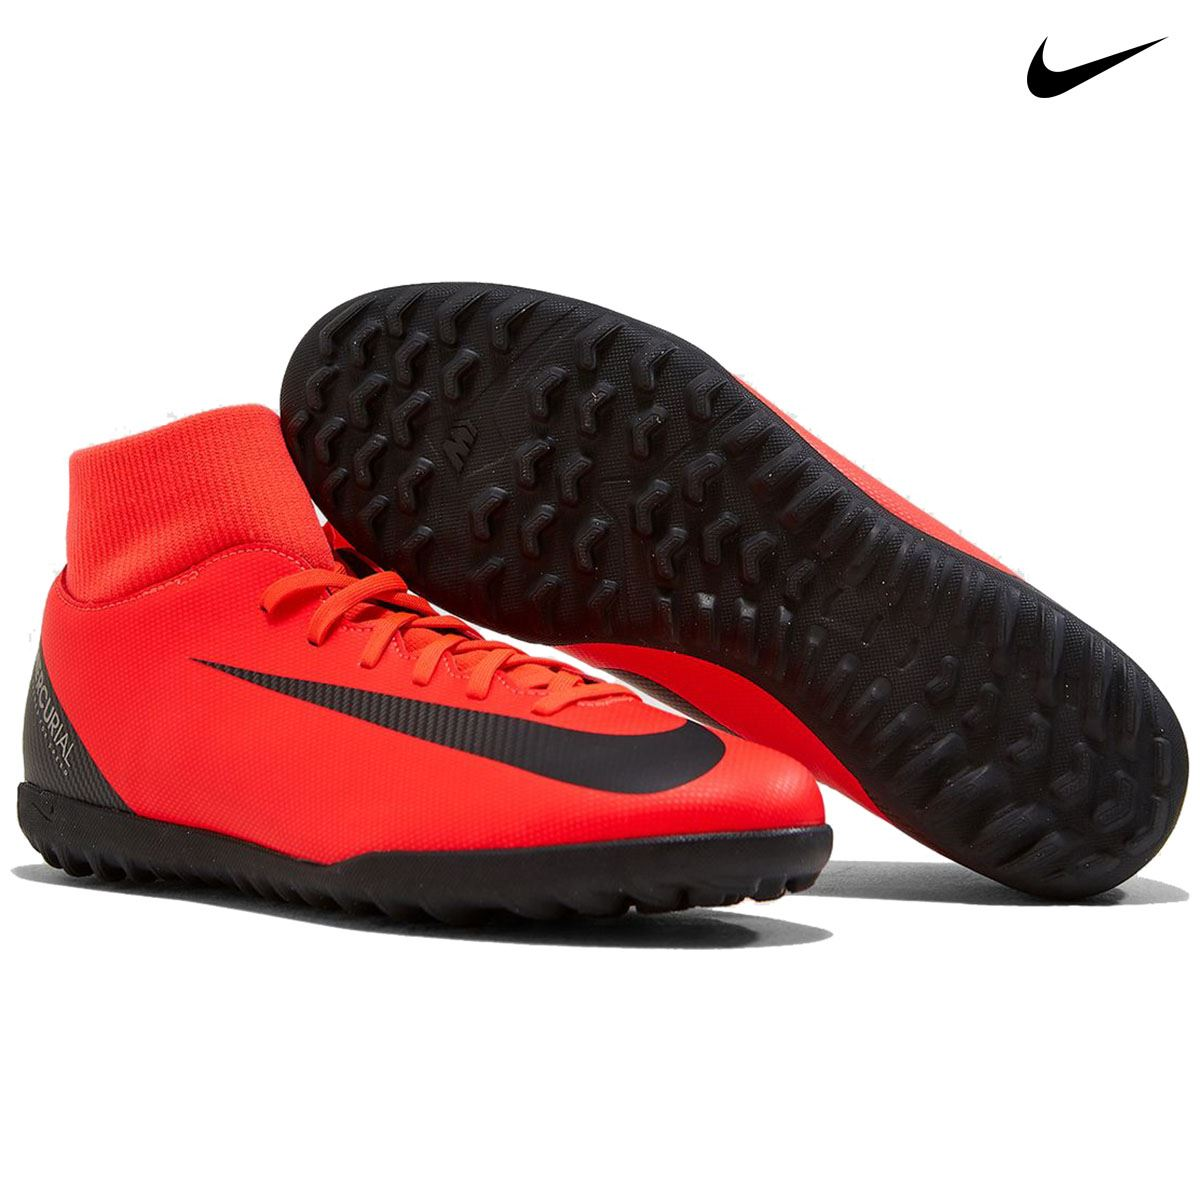 info for b6f17 a6c86 Boutique Boys - Zapatilla Nike MercurialX Superfly 6 Club CR7 TF Rojo |  Juntoz.com